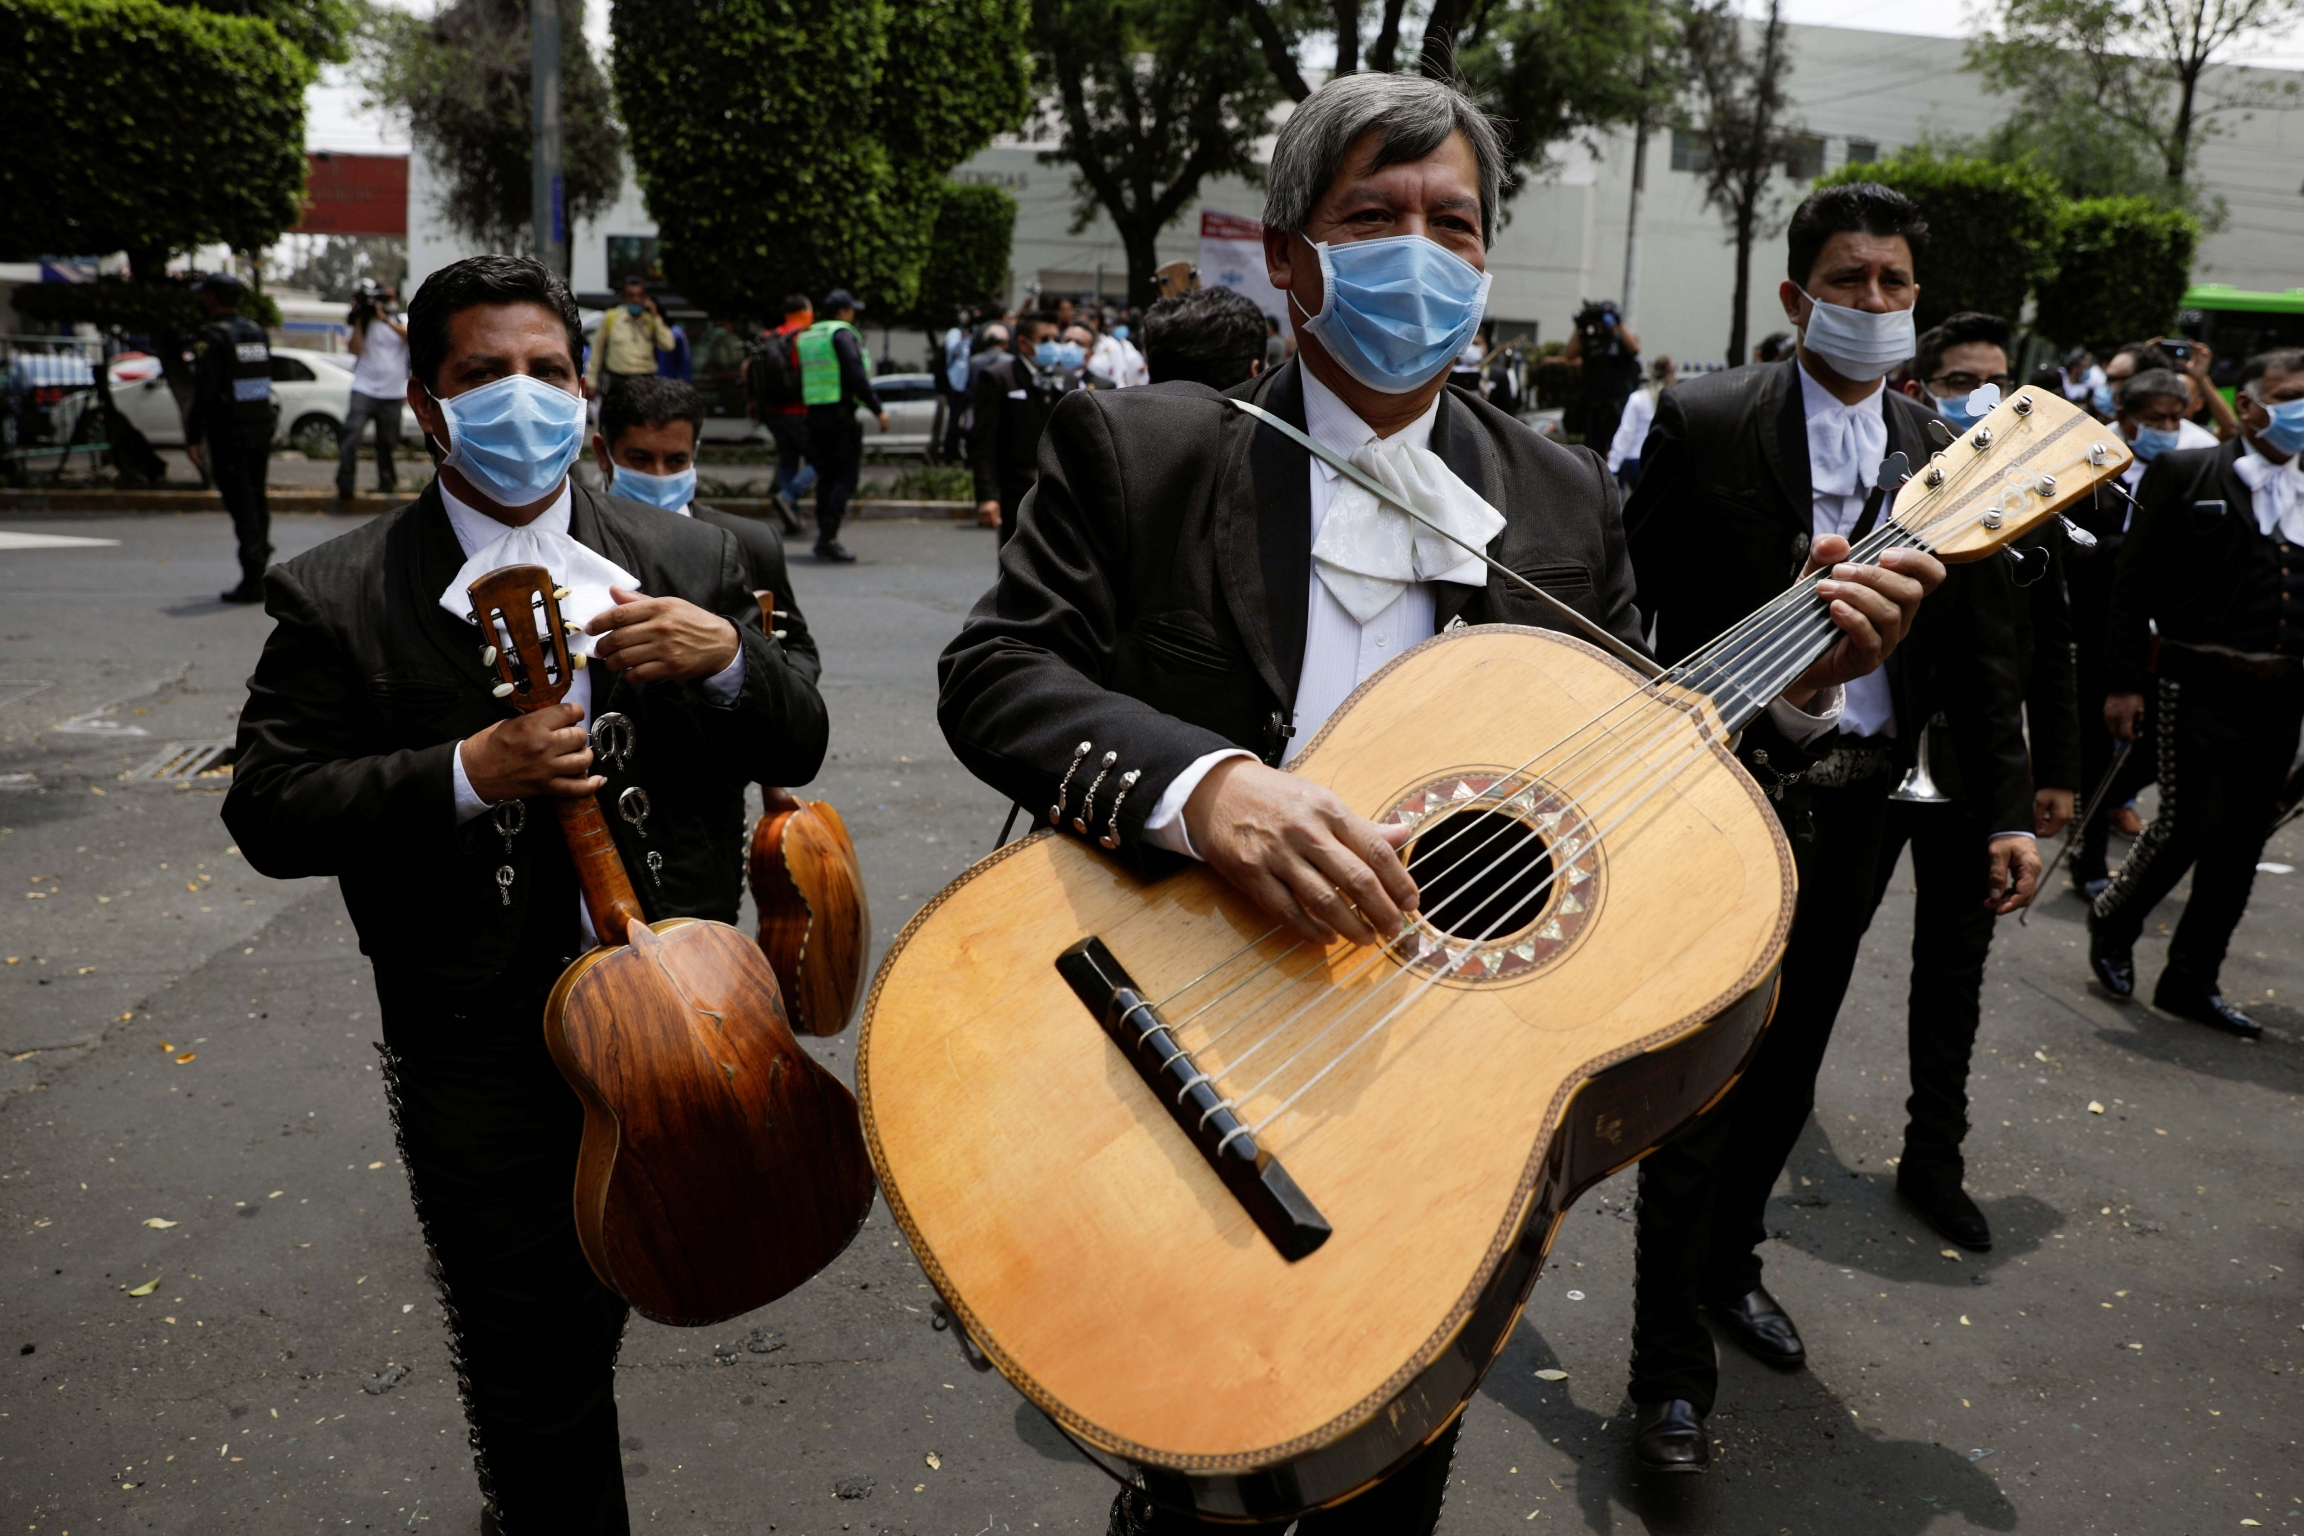 Members of a mariachi band wearing masks are seen after delivering a serenade for the medical staff of the National Institute of Respiratory Diseases during the coronavirus outbreak, in Mexico City, Mexico, April 7, 2020.